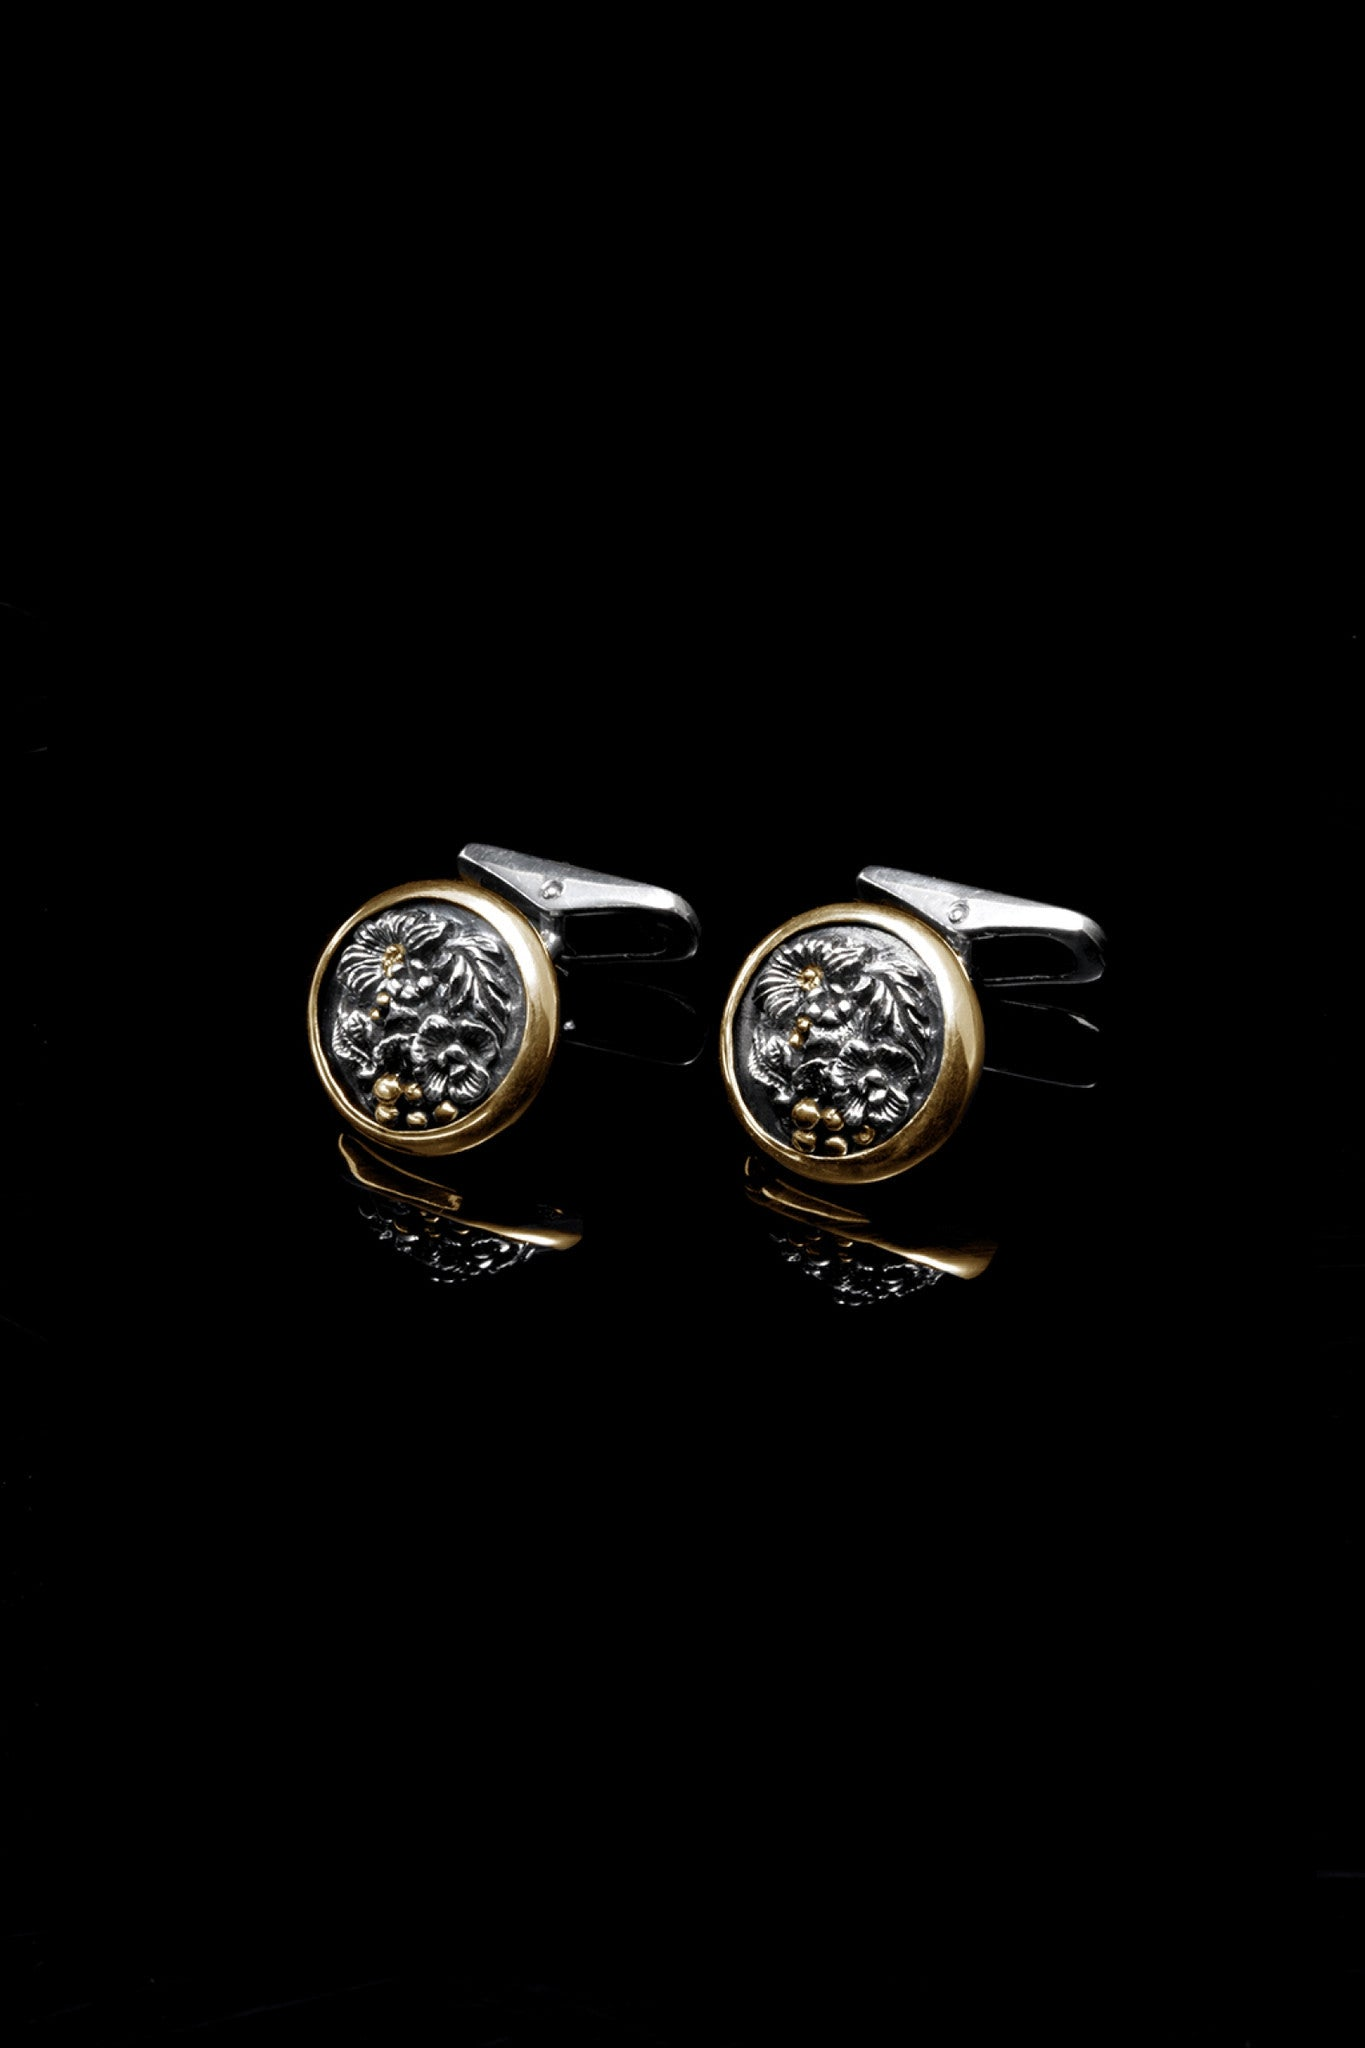 Ugo Cacciatori, Gold, Jewelry, 9kt Gold + Sterling Silver, Cufflinks, Gold + SIlver